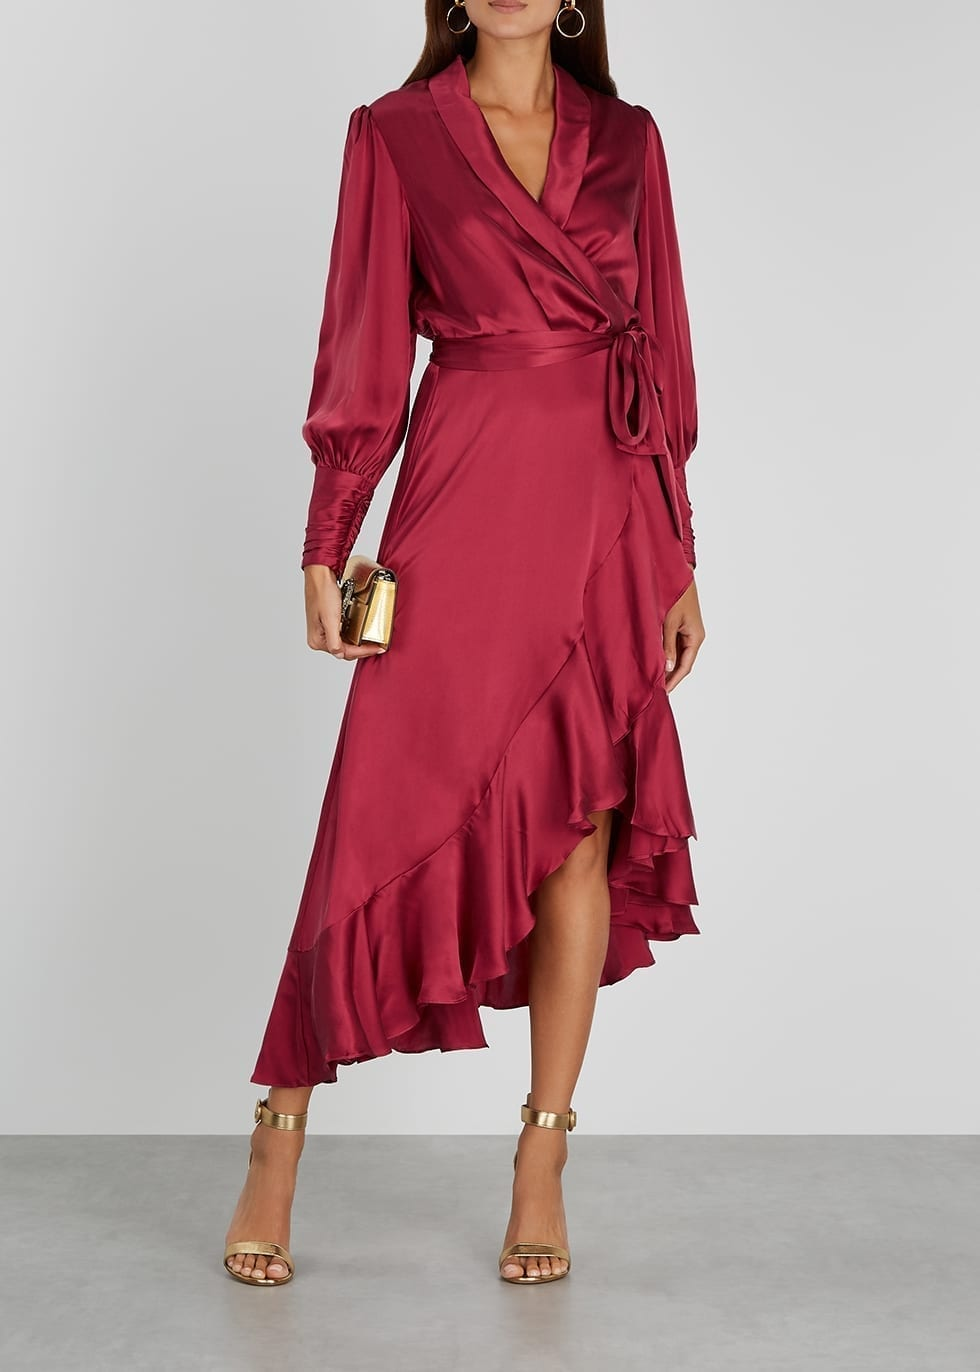 ZIMMERMANN Dark Red Ruffle-trimmed Silk Wrap Dress